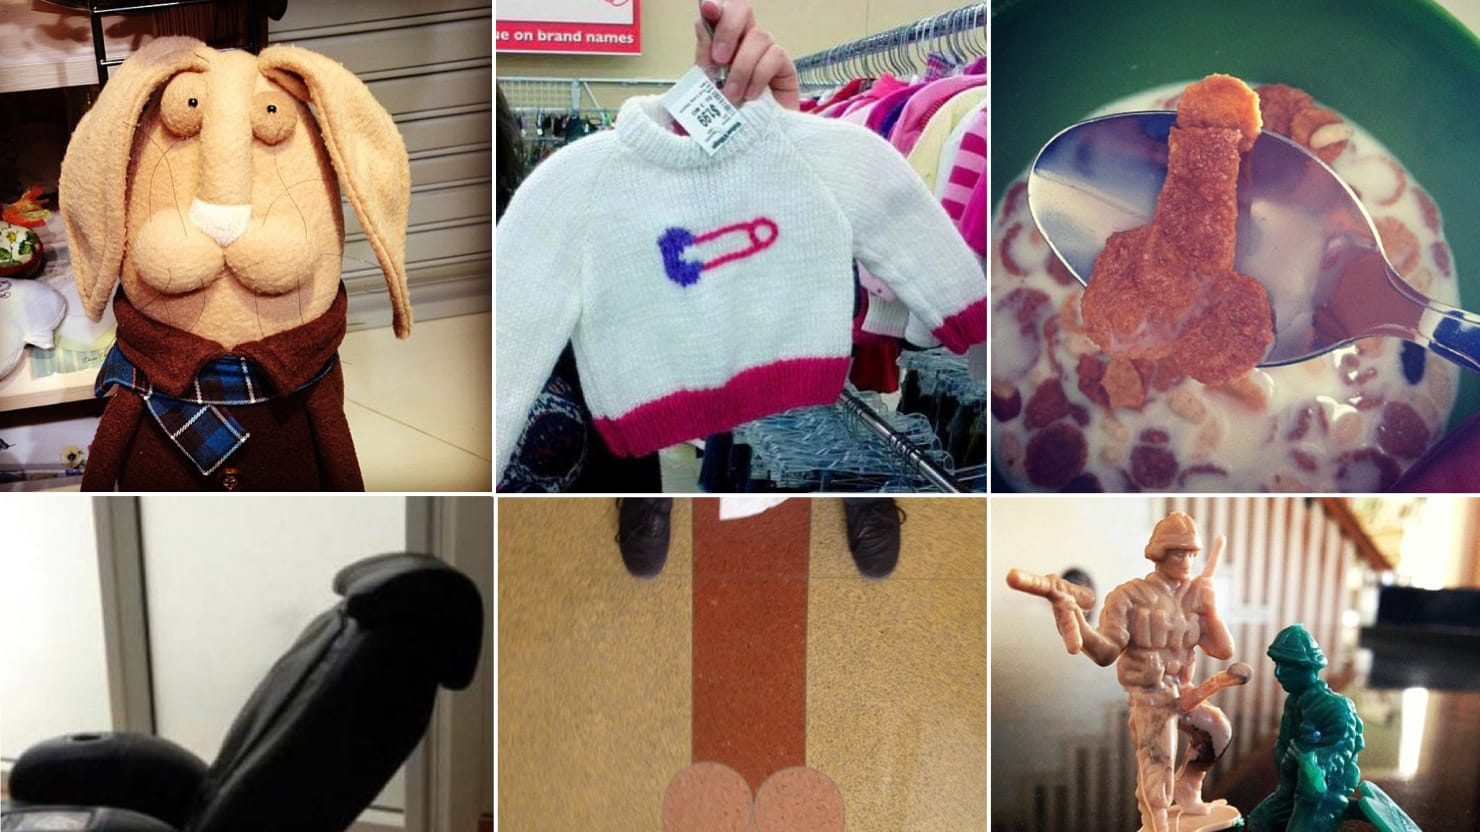 Penis Pics: Behind the Instagram Account That Looks Like a Dick